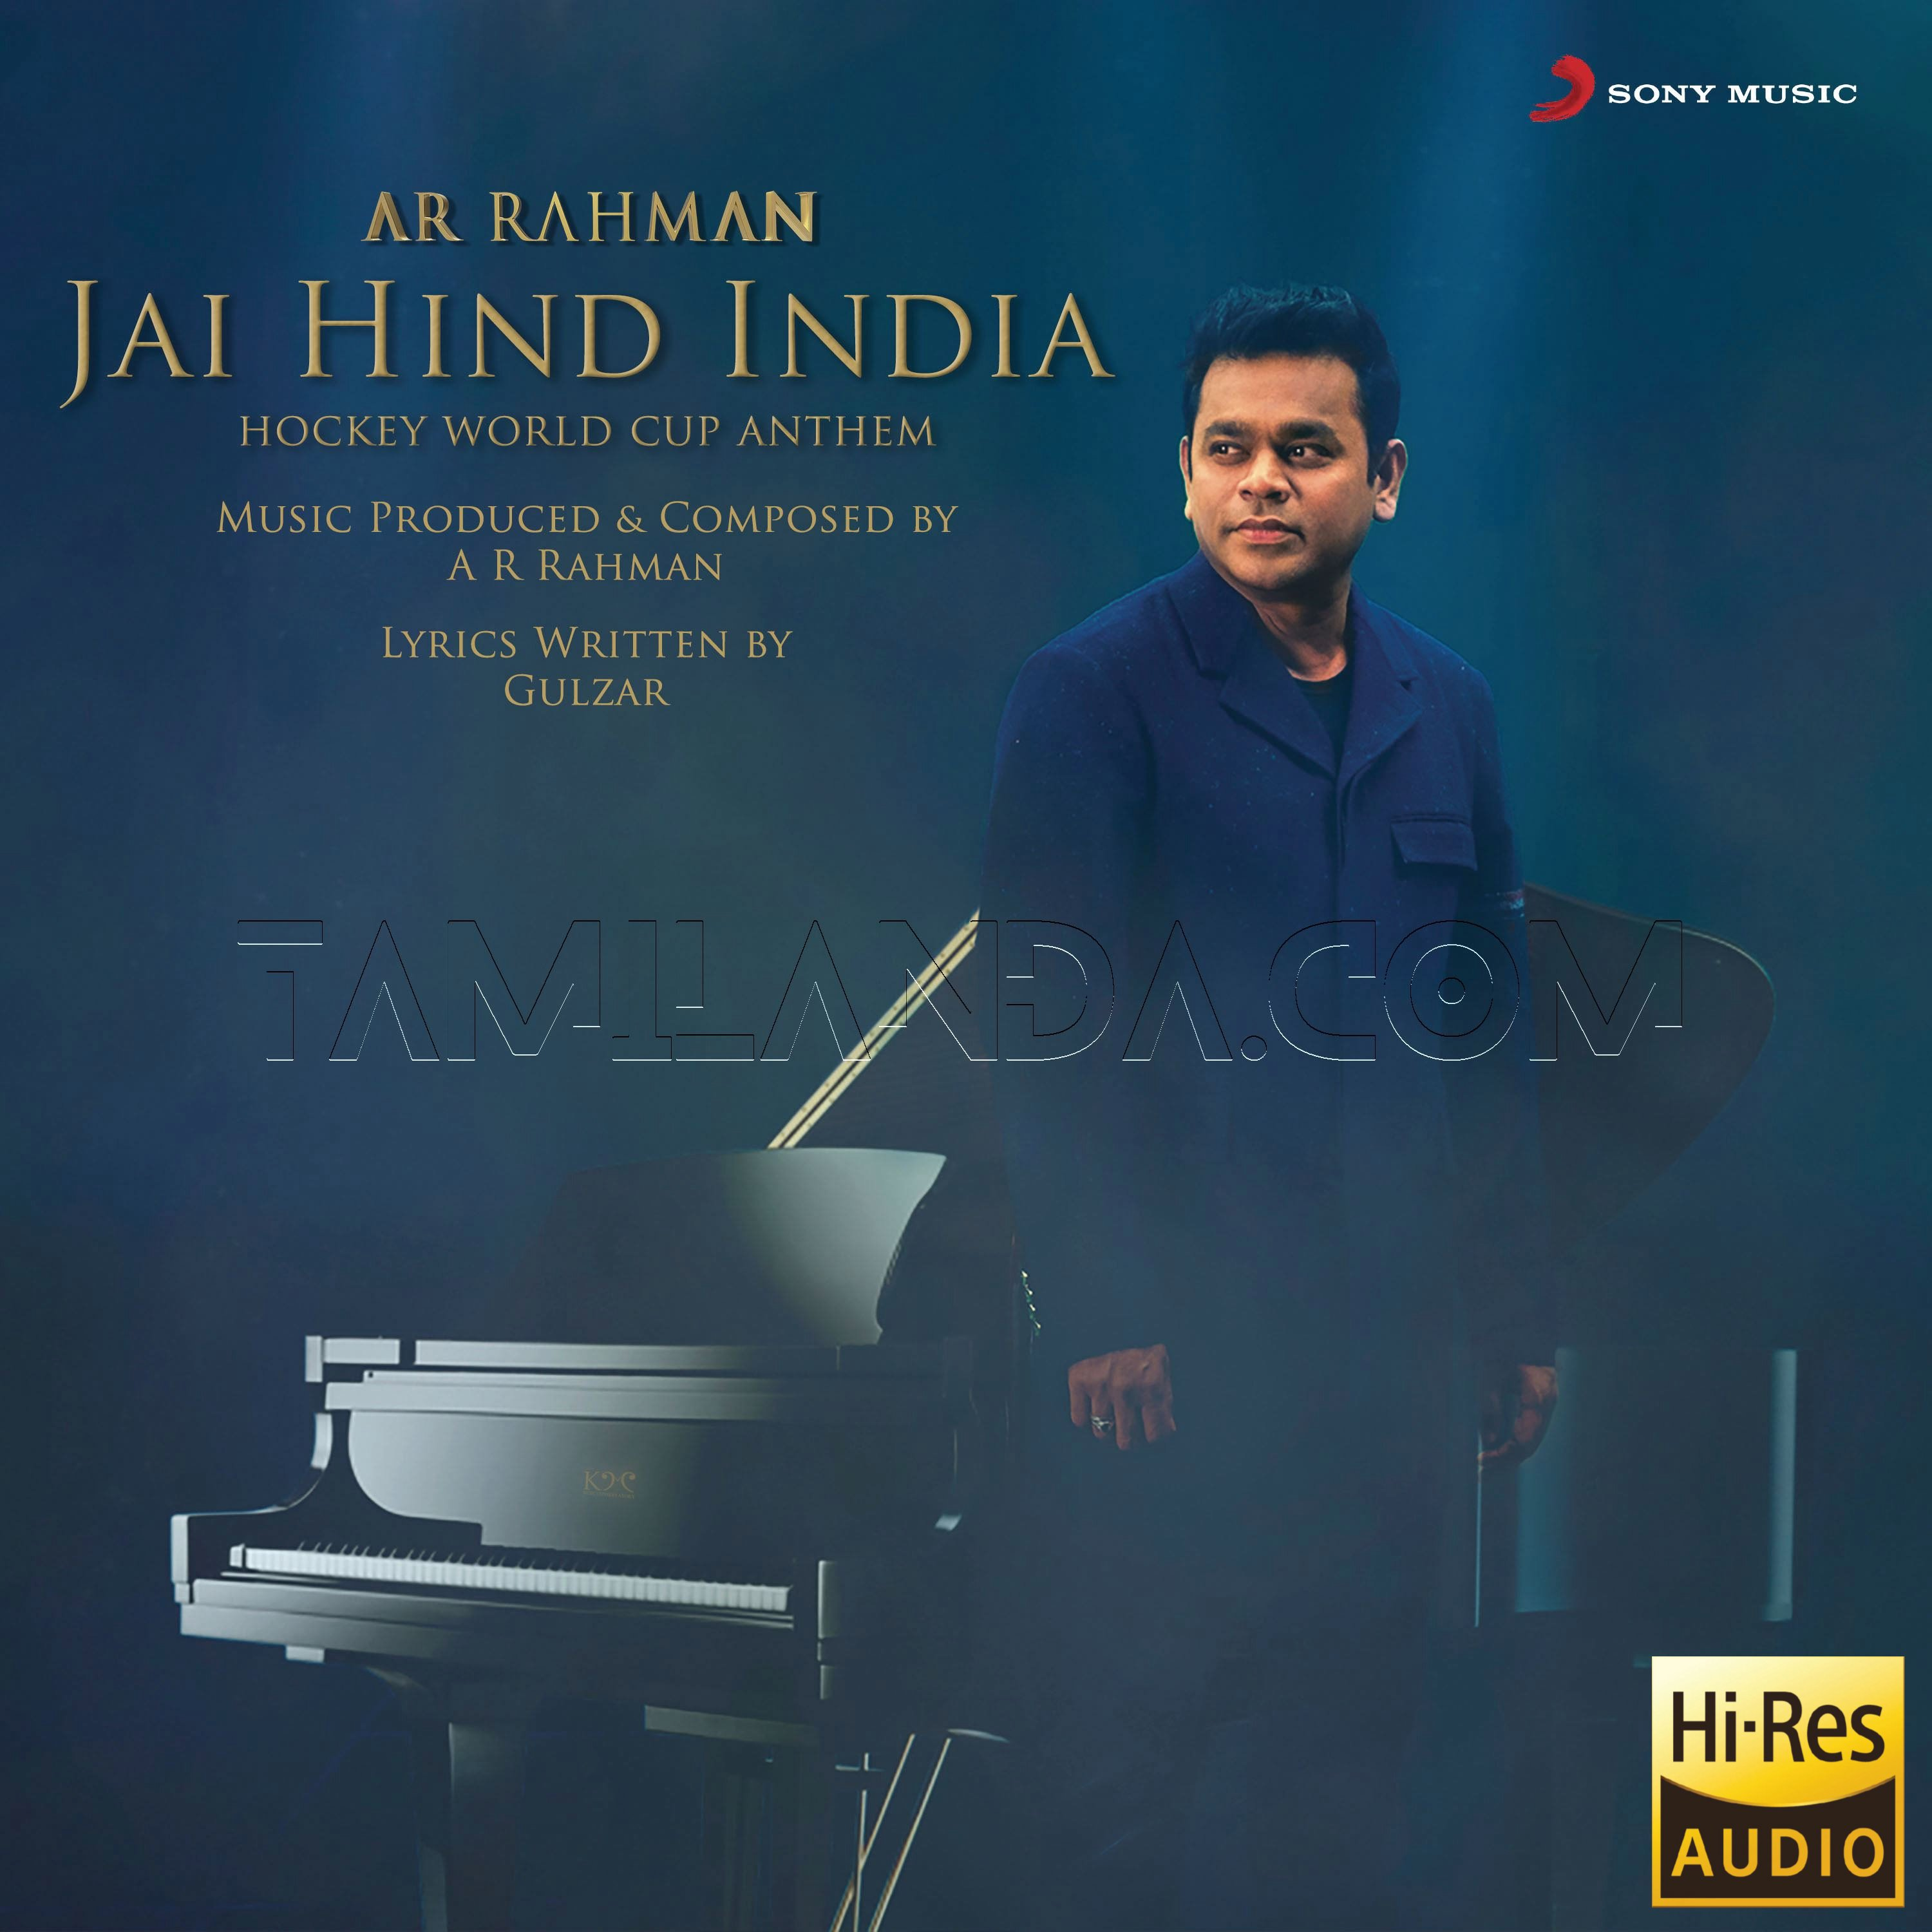 Jai Hind India – Single FLAC Song (2018) (A. R. Rahman) (24 BIT)